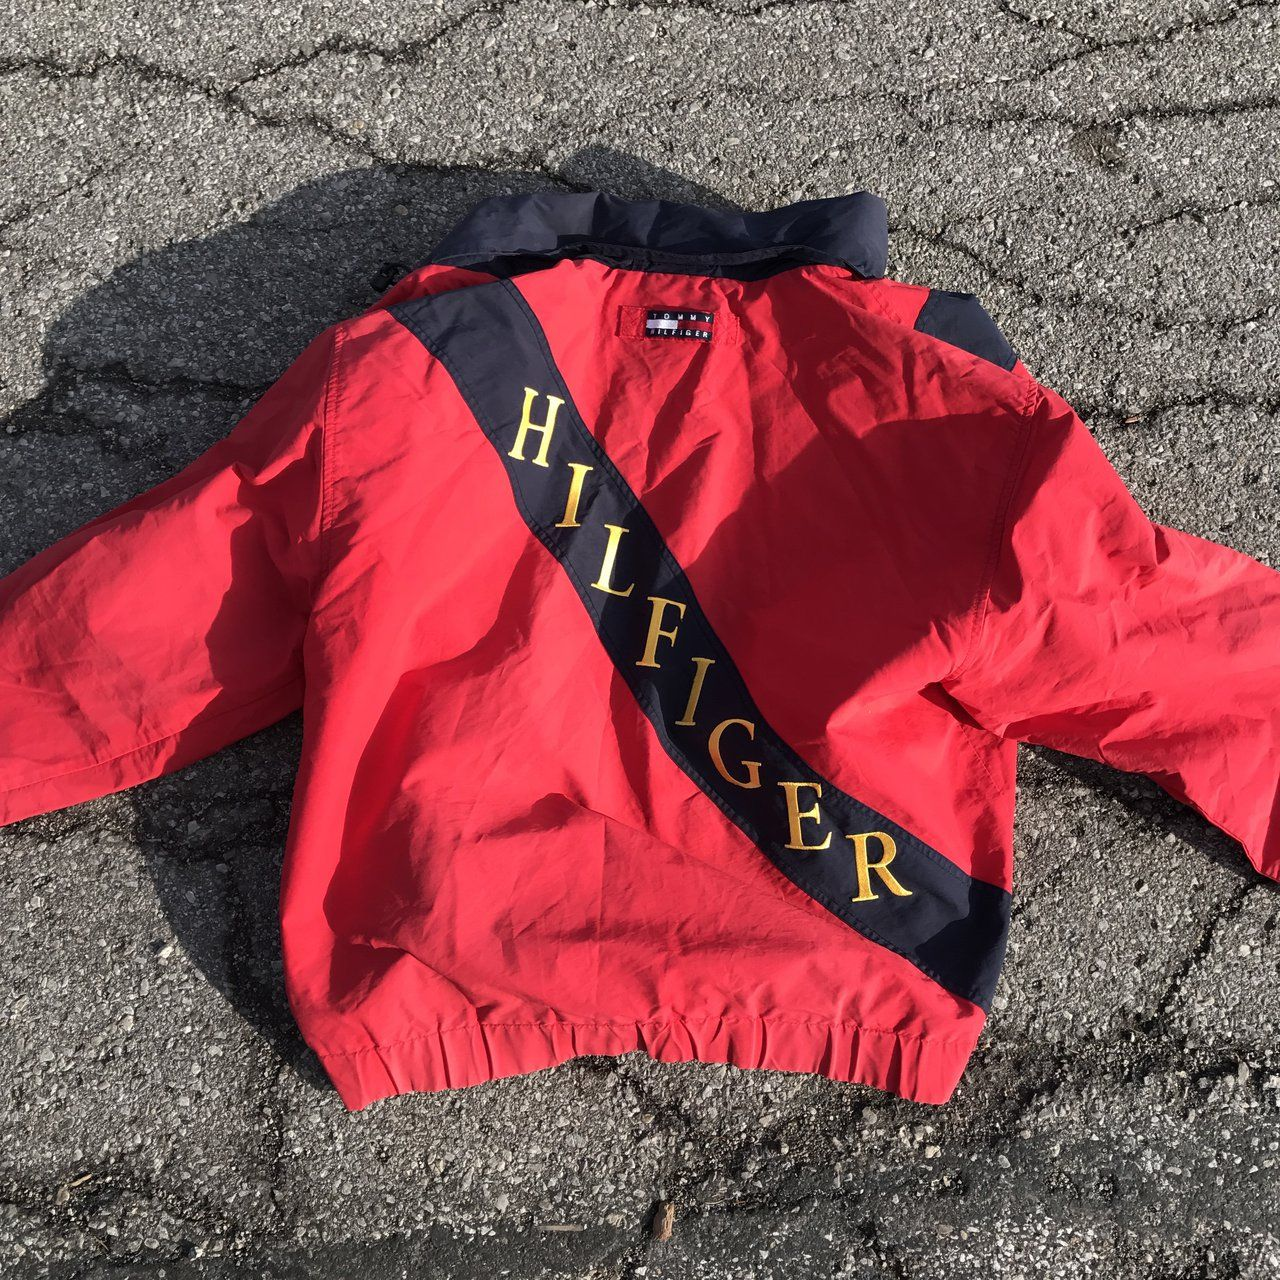 987568b91 Tommy Hilfiger Spell out Jacket size XL - Depop | My style